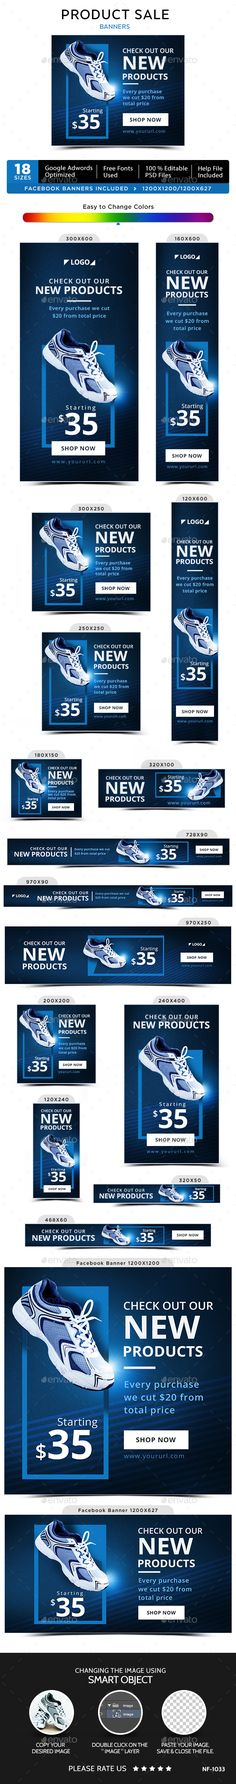 Product Sale Web Banners Template PSD. Download here: http://graphicriver.net/item/product-sale-banners/14720571?ref=ksioks